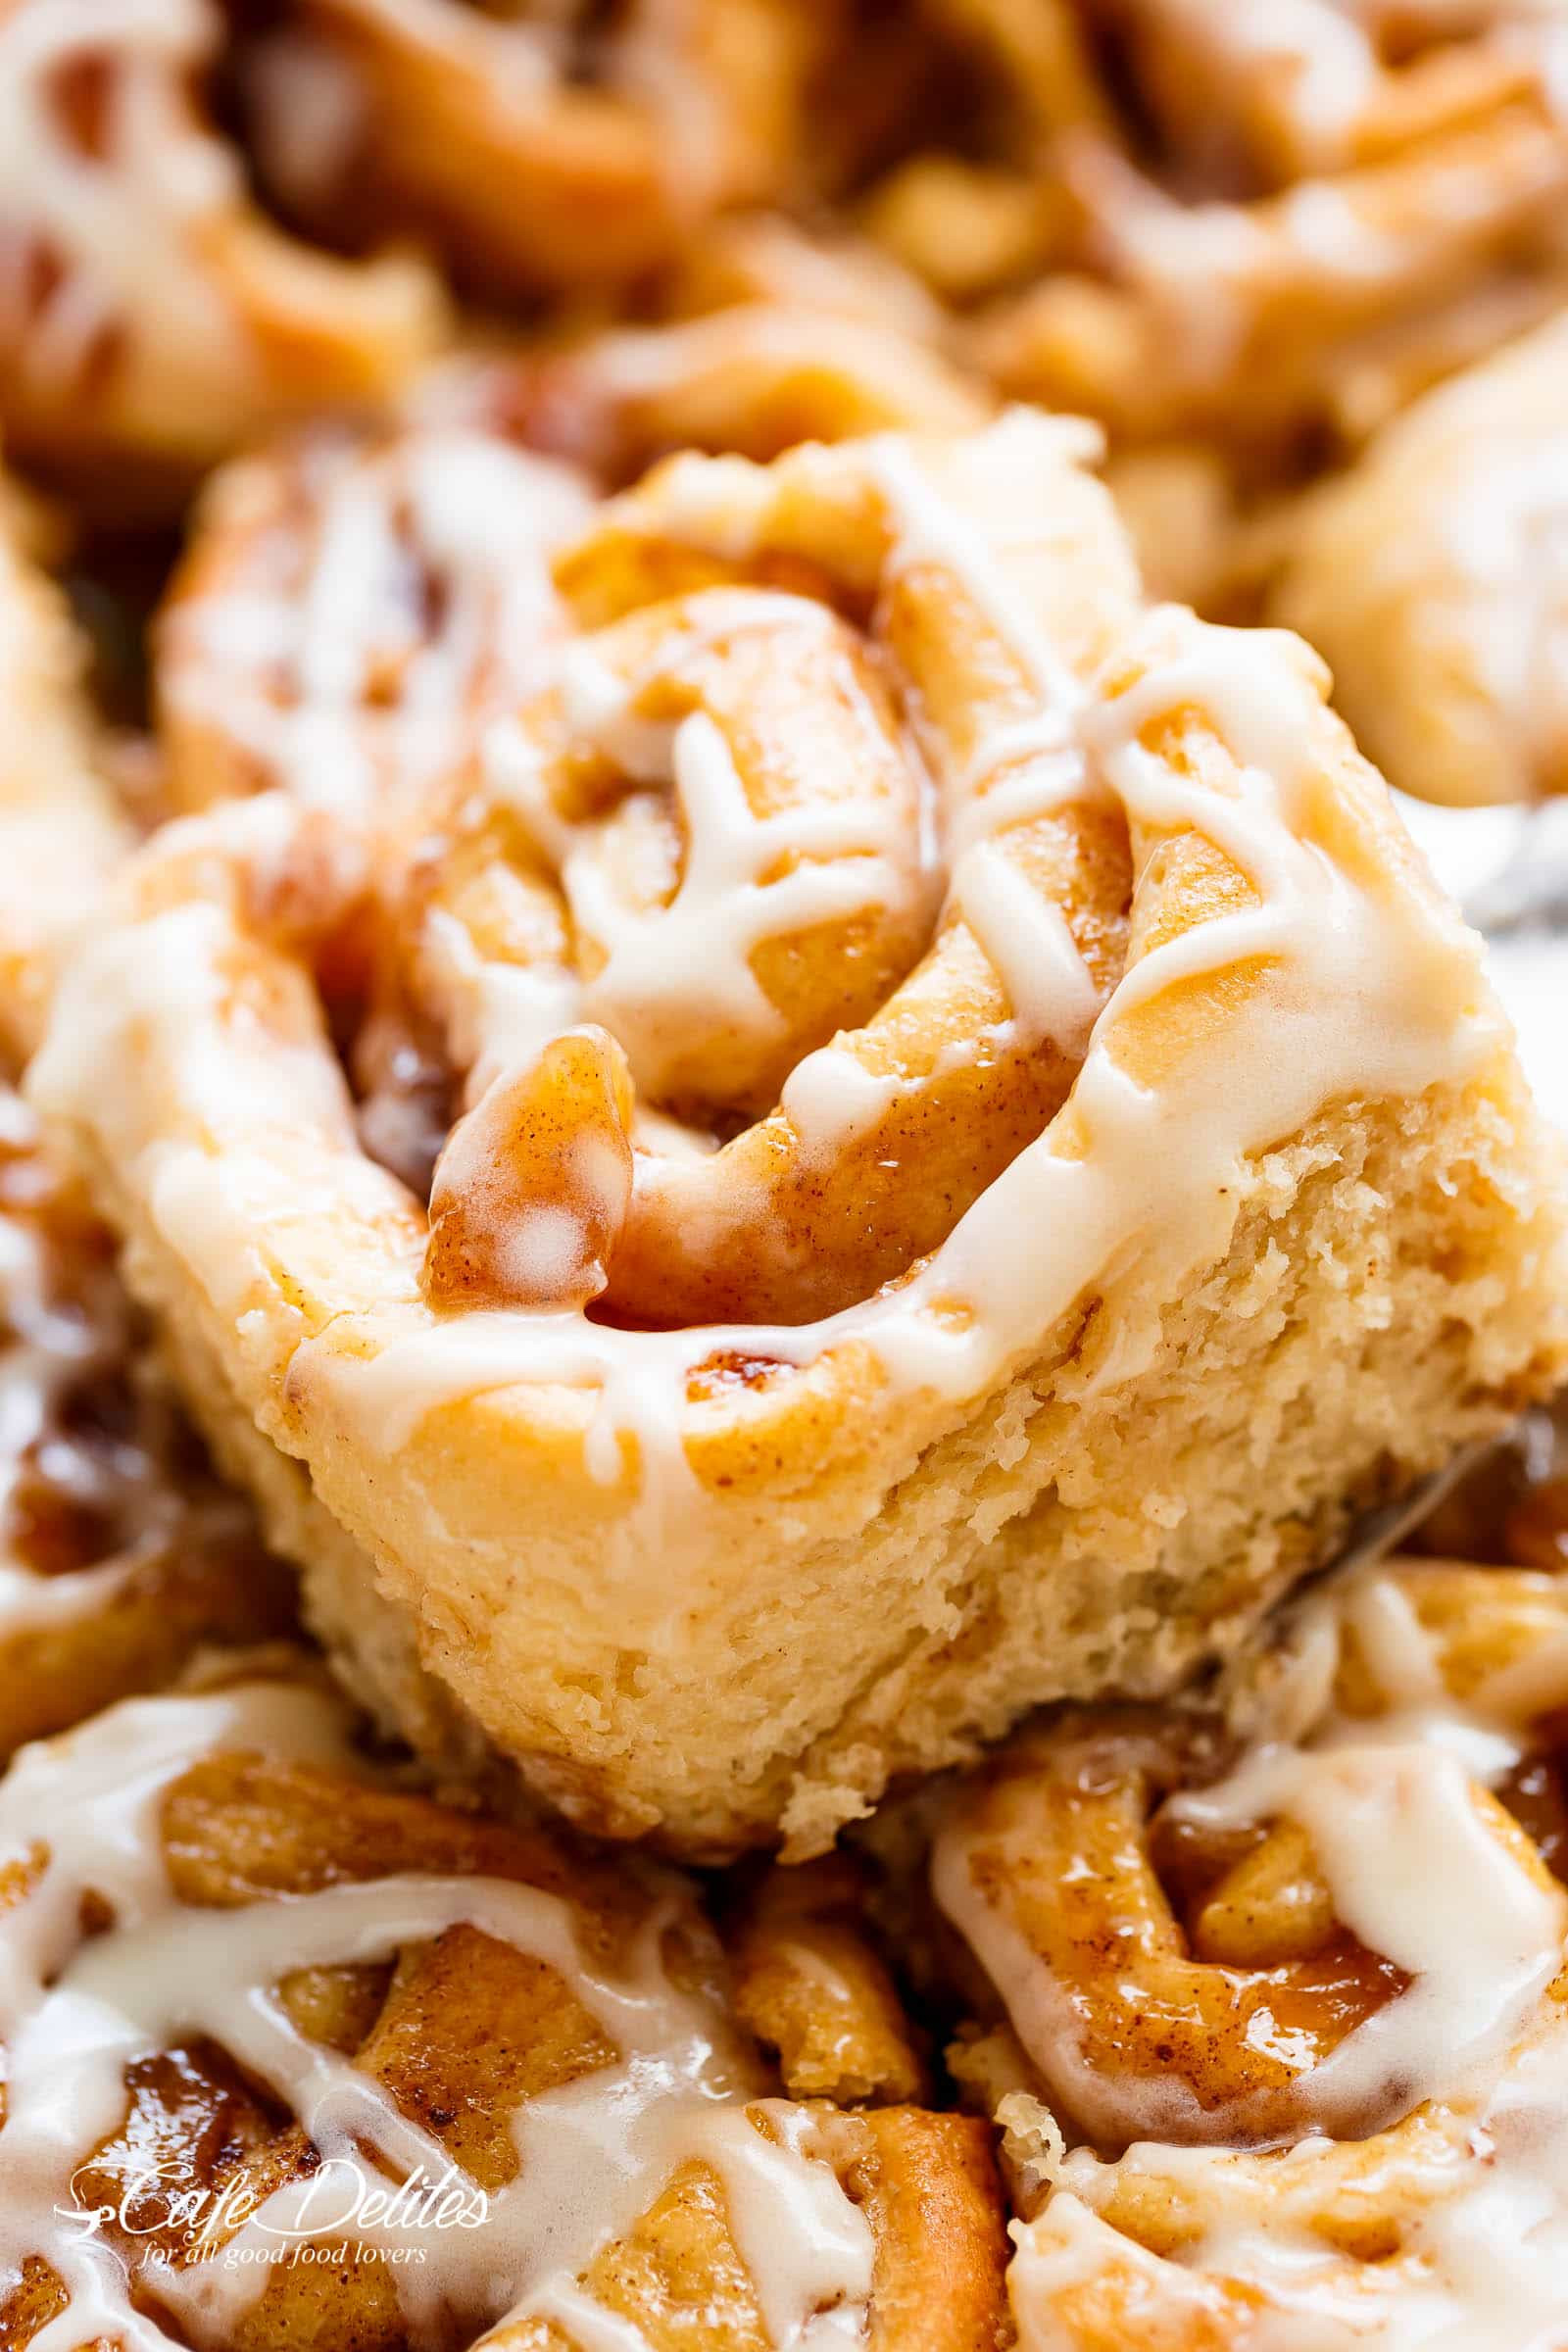 Apple Pie Cinnamon Rolls  Apple Pie Cinnamon Rolls With Cream Cheese Frosting Cafe